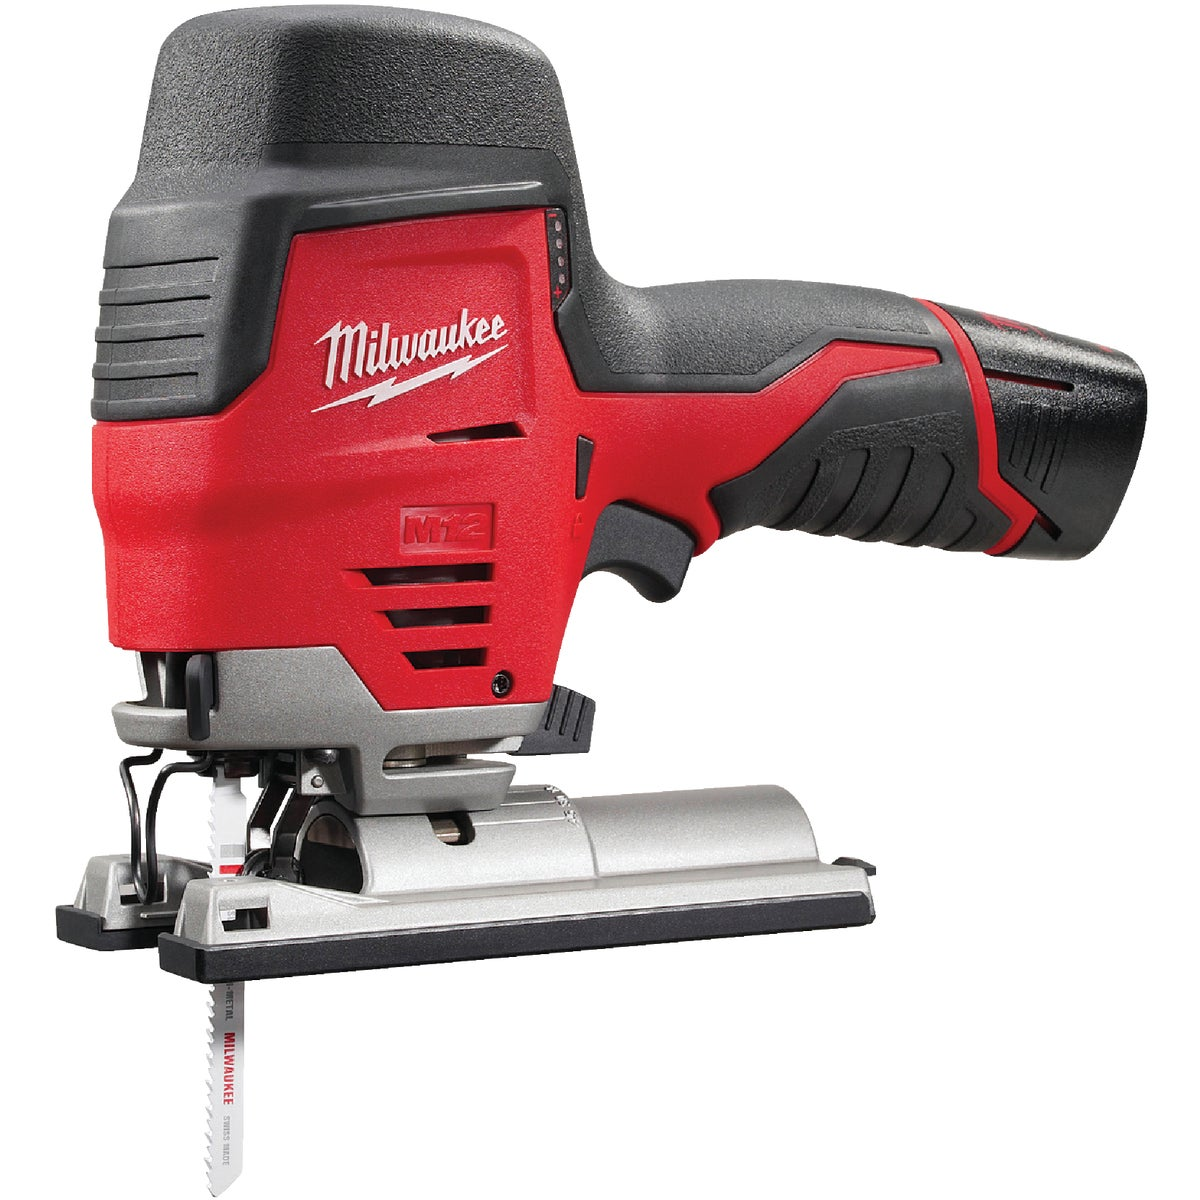 M12 COMPACT JIG SAW - 2445-21 by Milwaukee Elec Tool